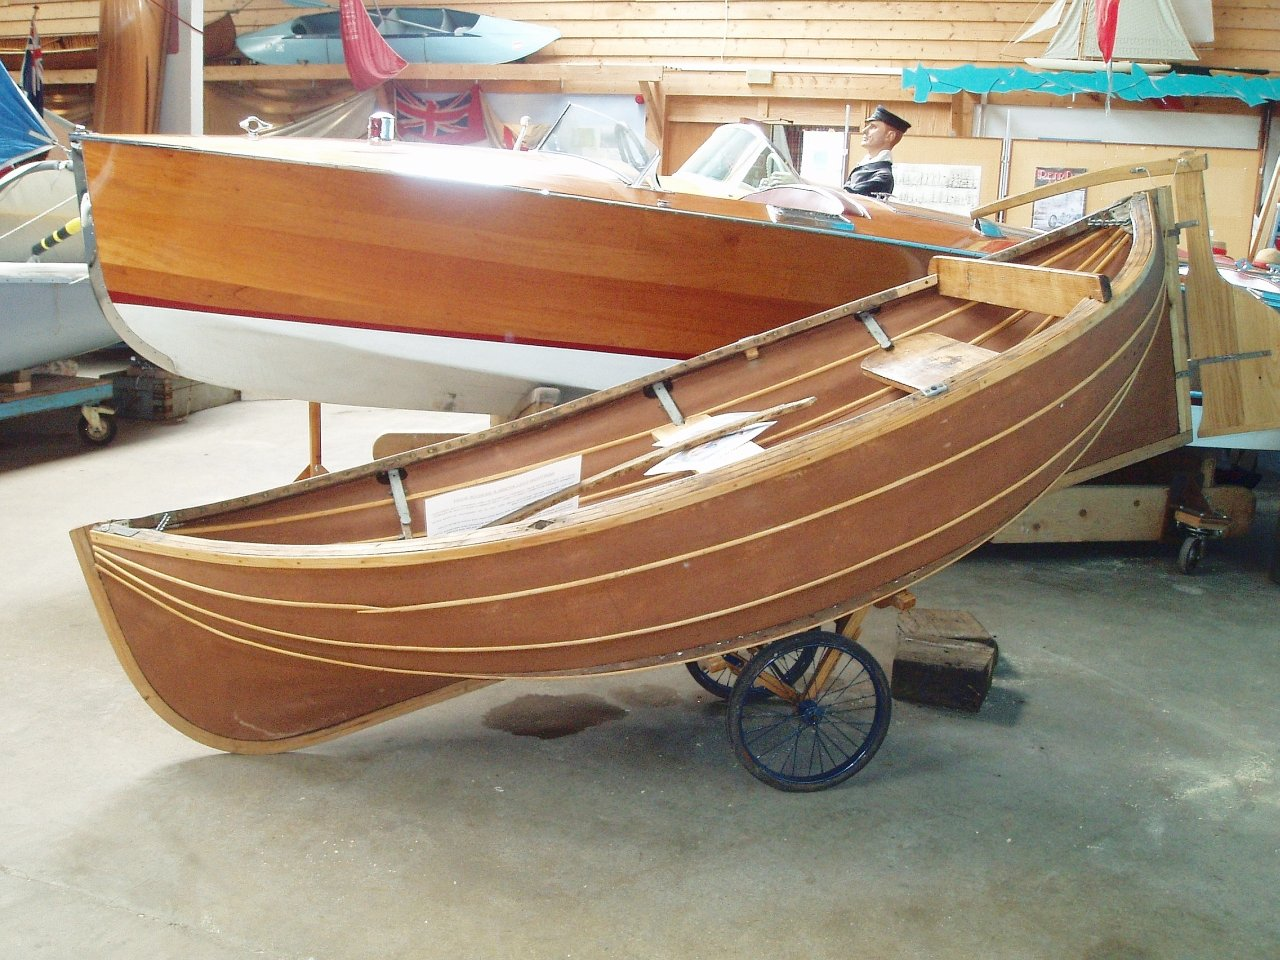 Duck boat and other plan: Free plywood boat plans net